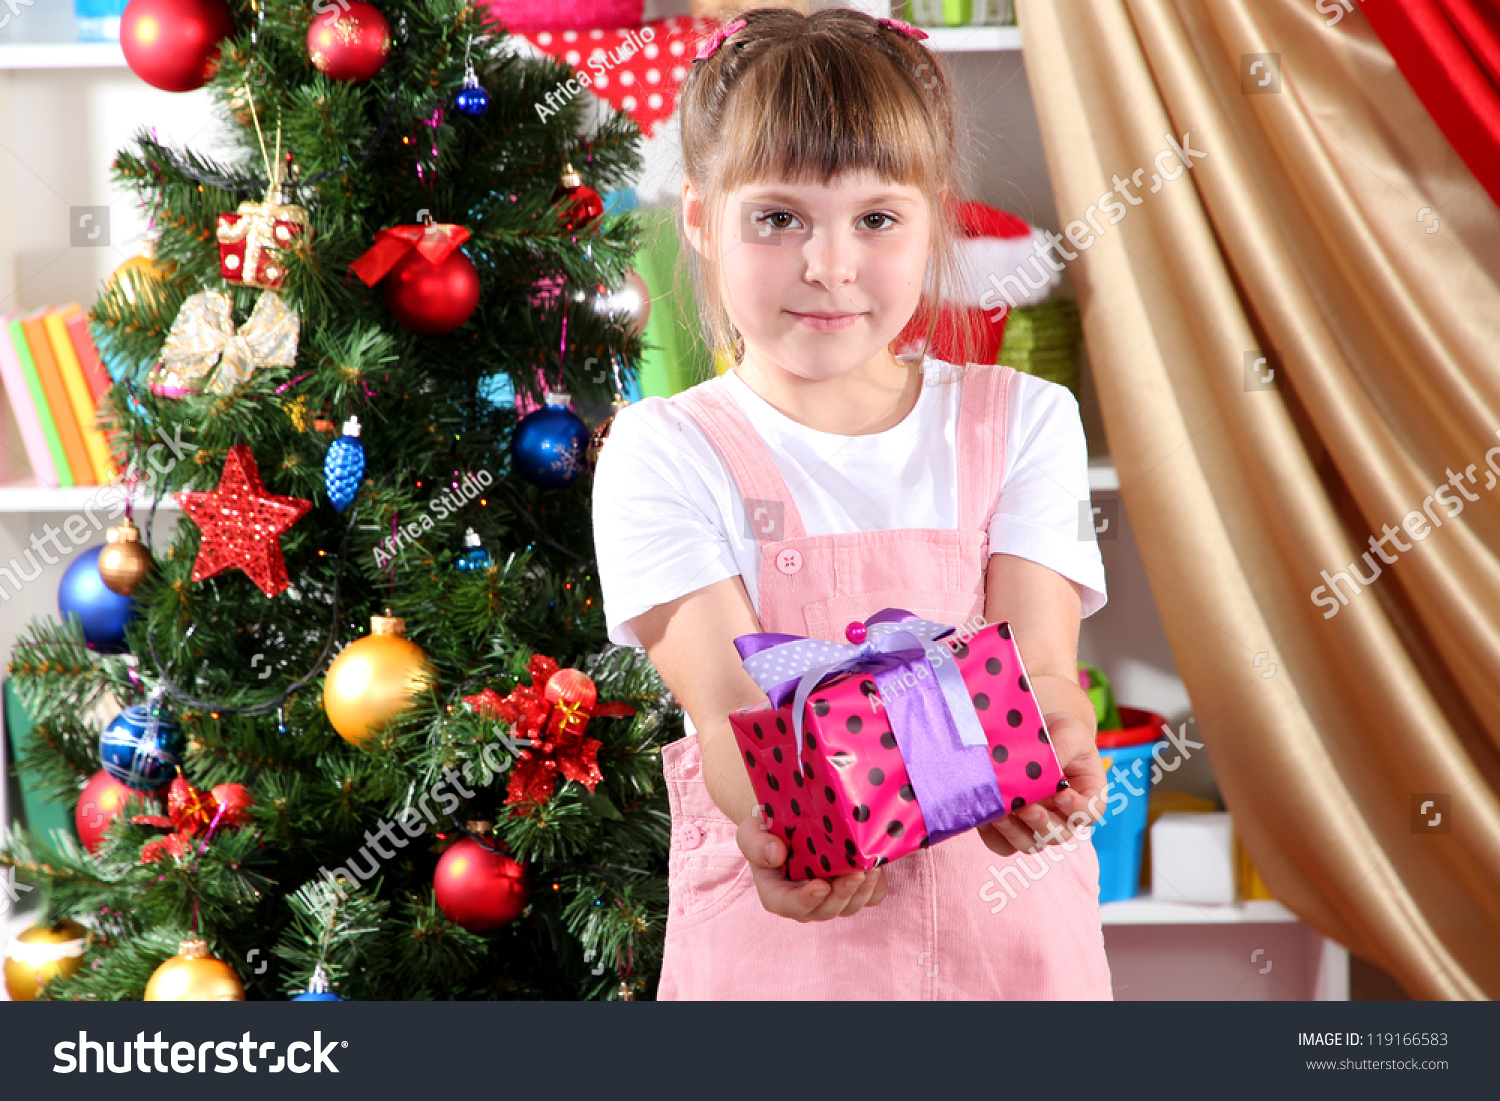 Little Girl Toys : Little girl with christmas toys in festively decorated